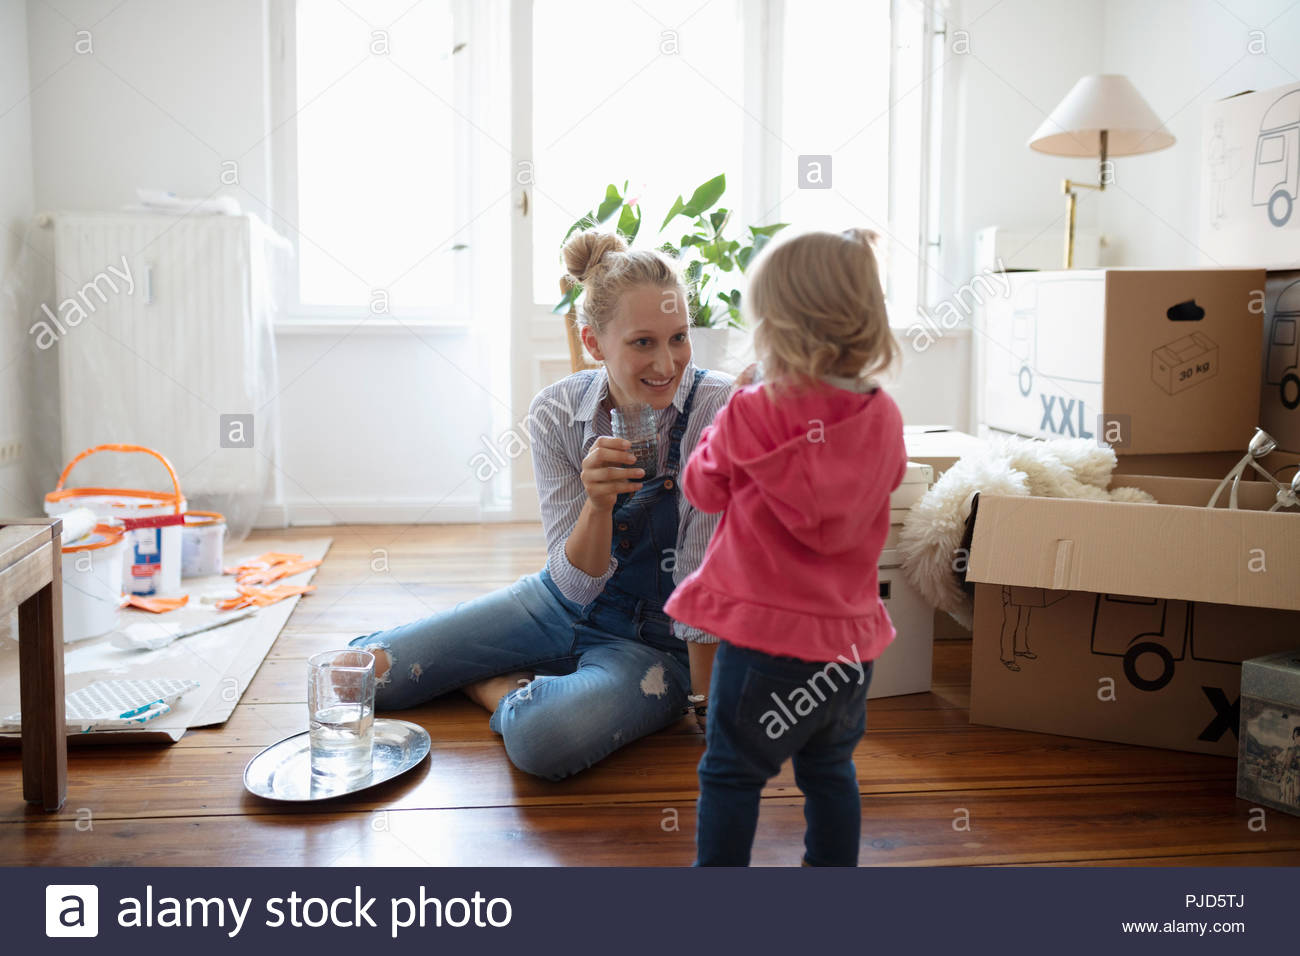 Mother and daughter taking a break from moving in and painting - Stock Image